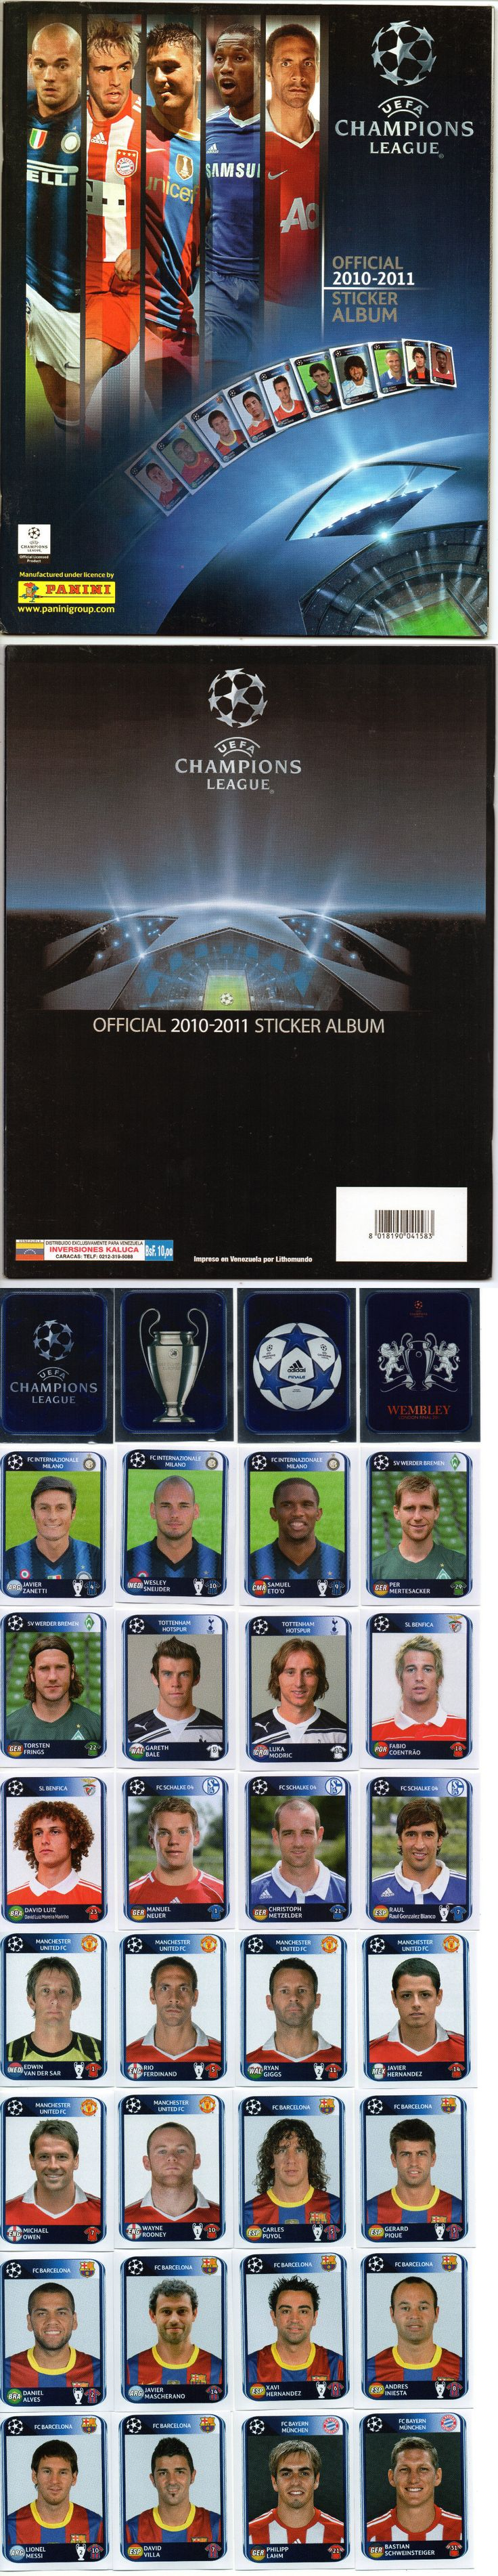 Sports Stickers Sets and Albums 141755: Panini Uefa Champions League 2010 2011 Complete Loose Sticker Set + Empty Album -> BUY IT NOW ONLY: $43.99 on eBay!